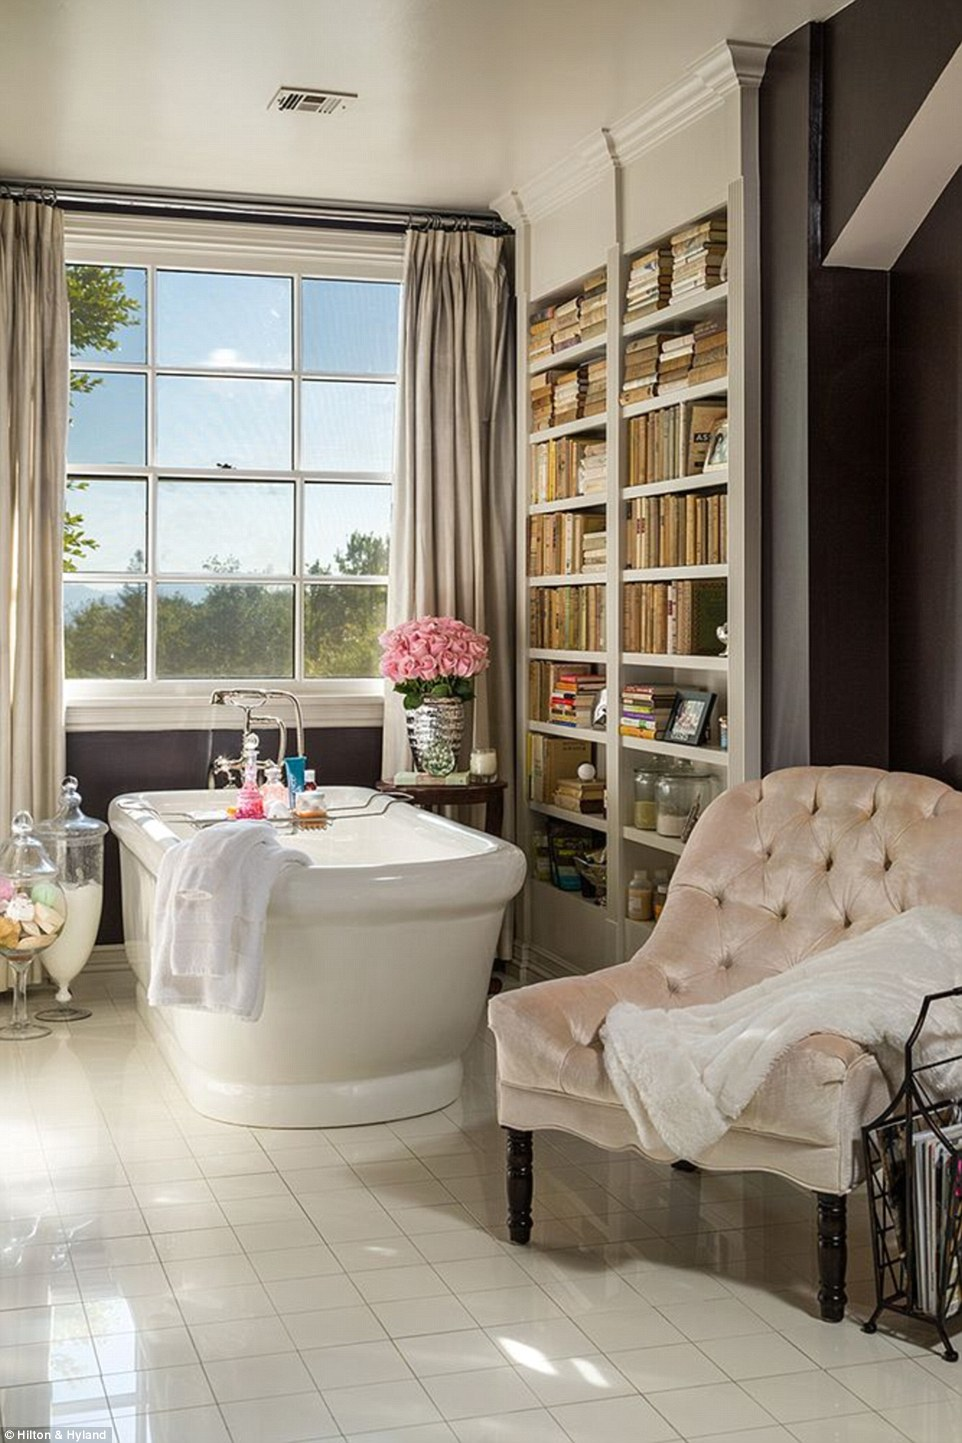 Cleaning up nicely! The bathroom gave just another glimpse of JLo's knack for stylish home decor